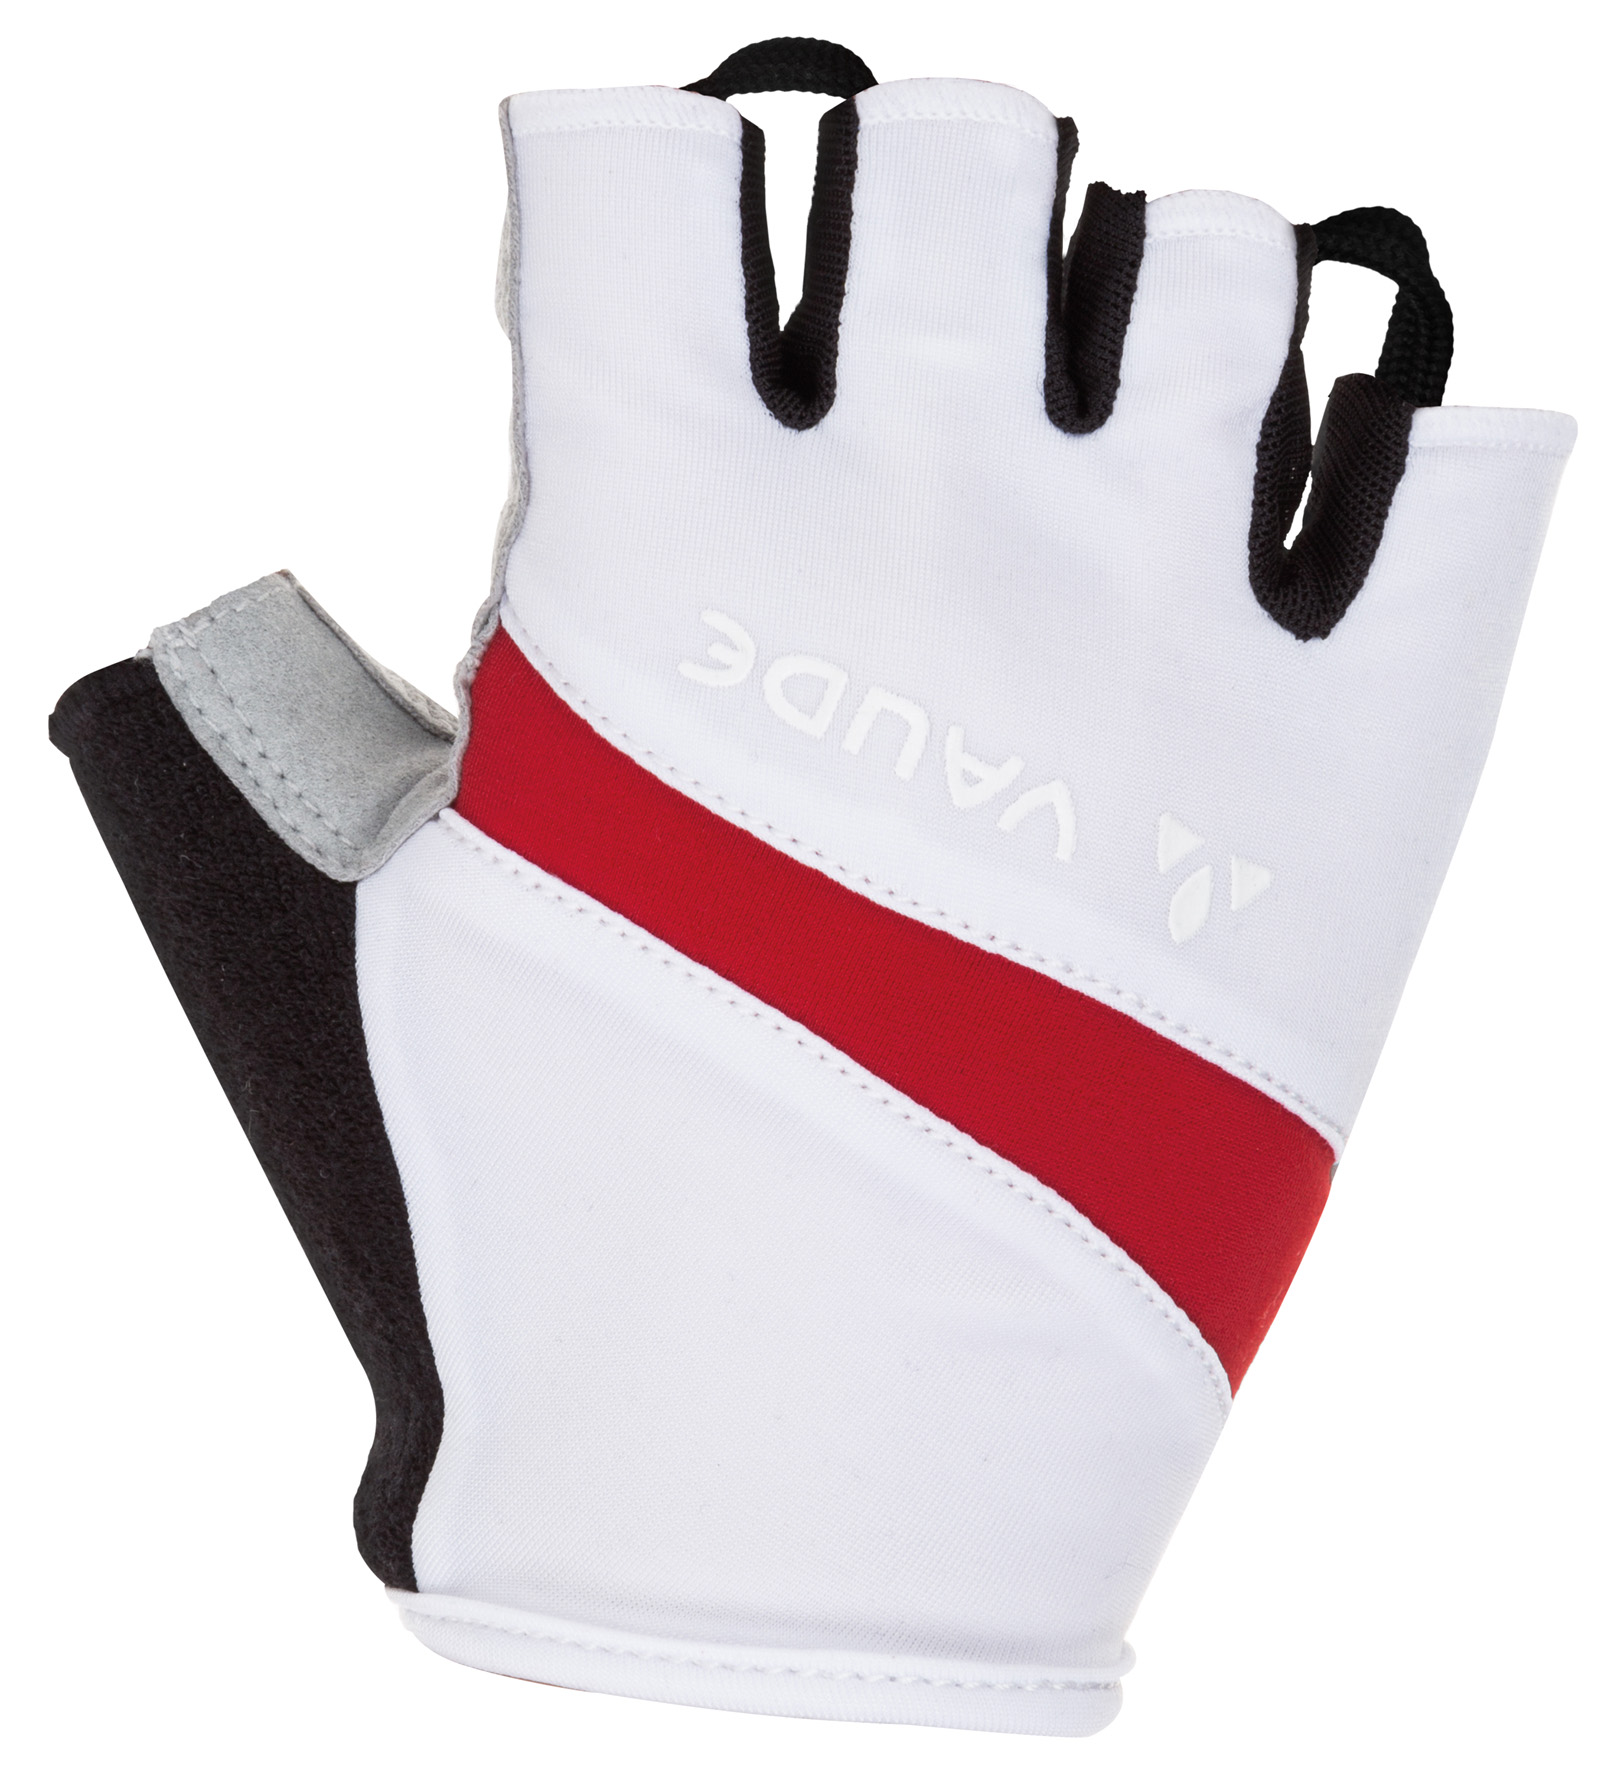 VAUDE Women´s Active Gloves white Größe 5 - VAUDE Women´s Active Gloves white Größe 5